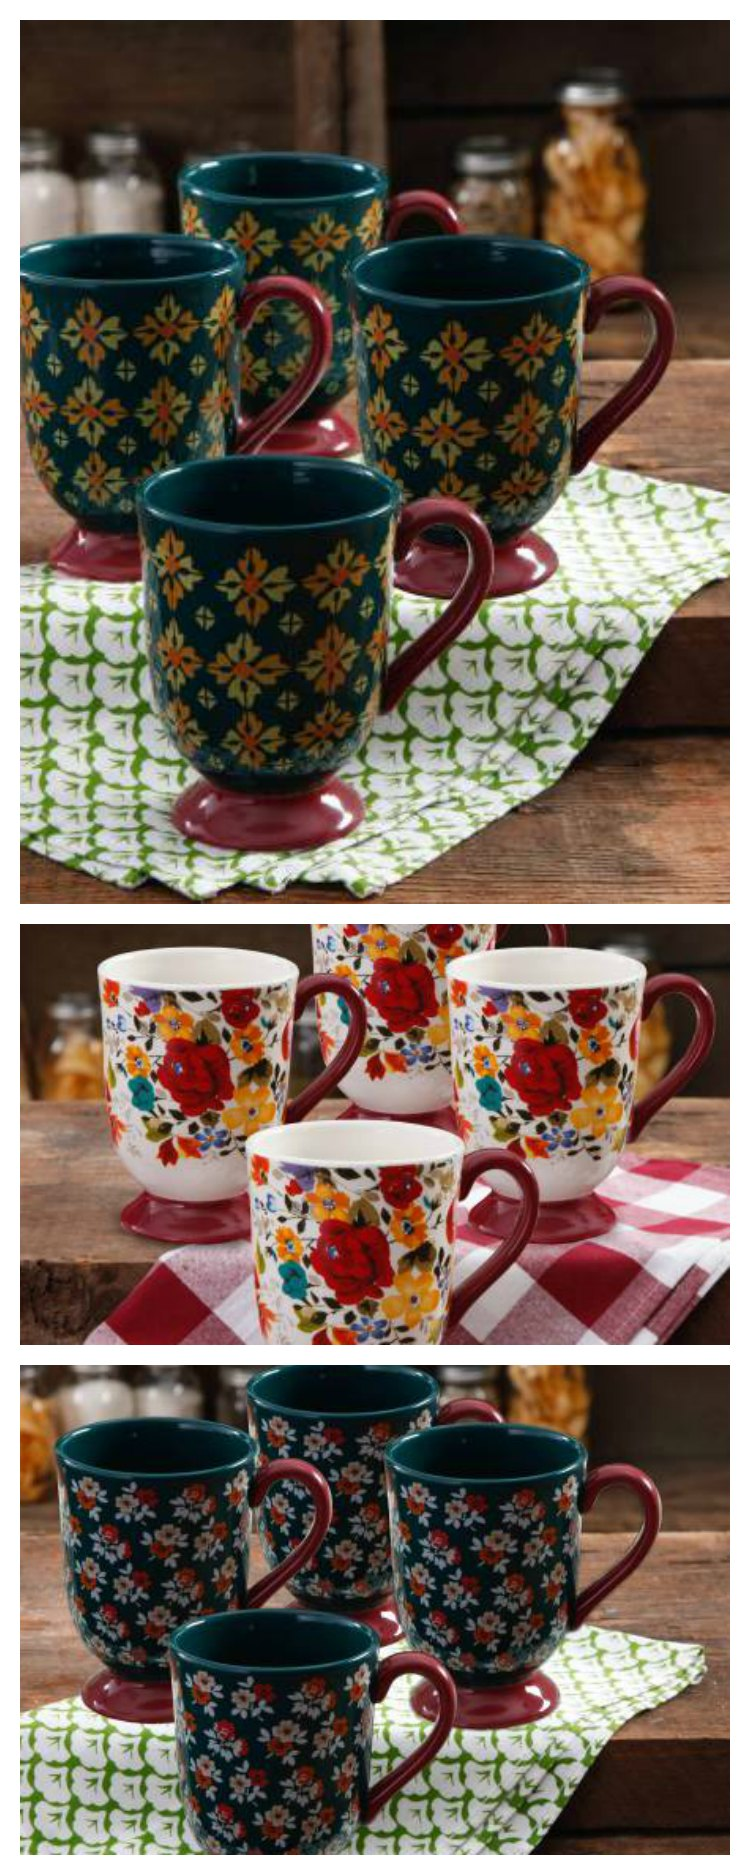 18 Ounce Pioneer Woman Coffee Cups are perfect for coffee, tea or any hot beverage. So pretty and yet so useful. What is your favorite color?